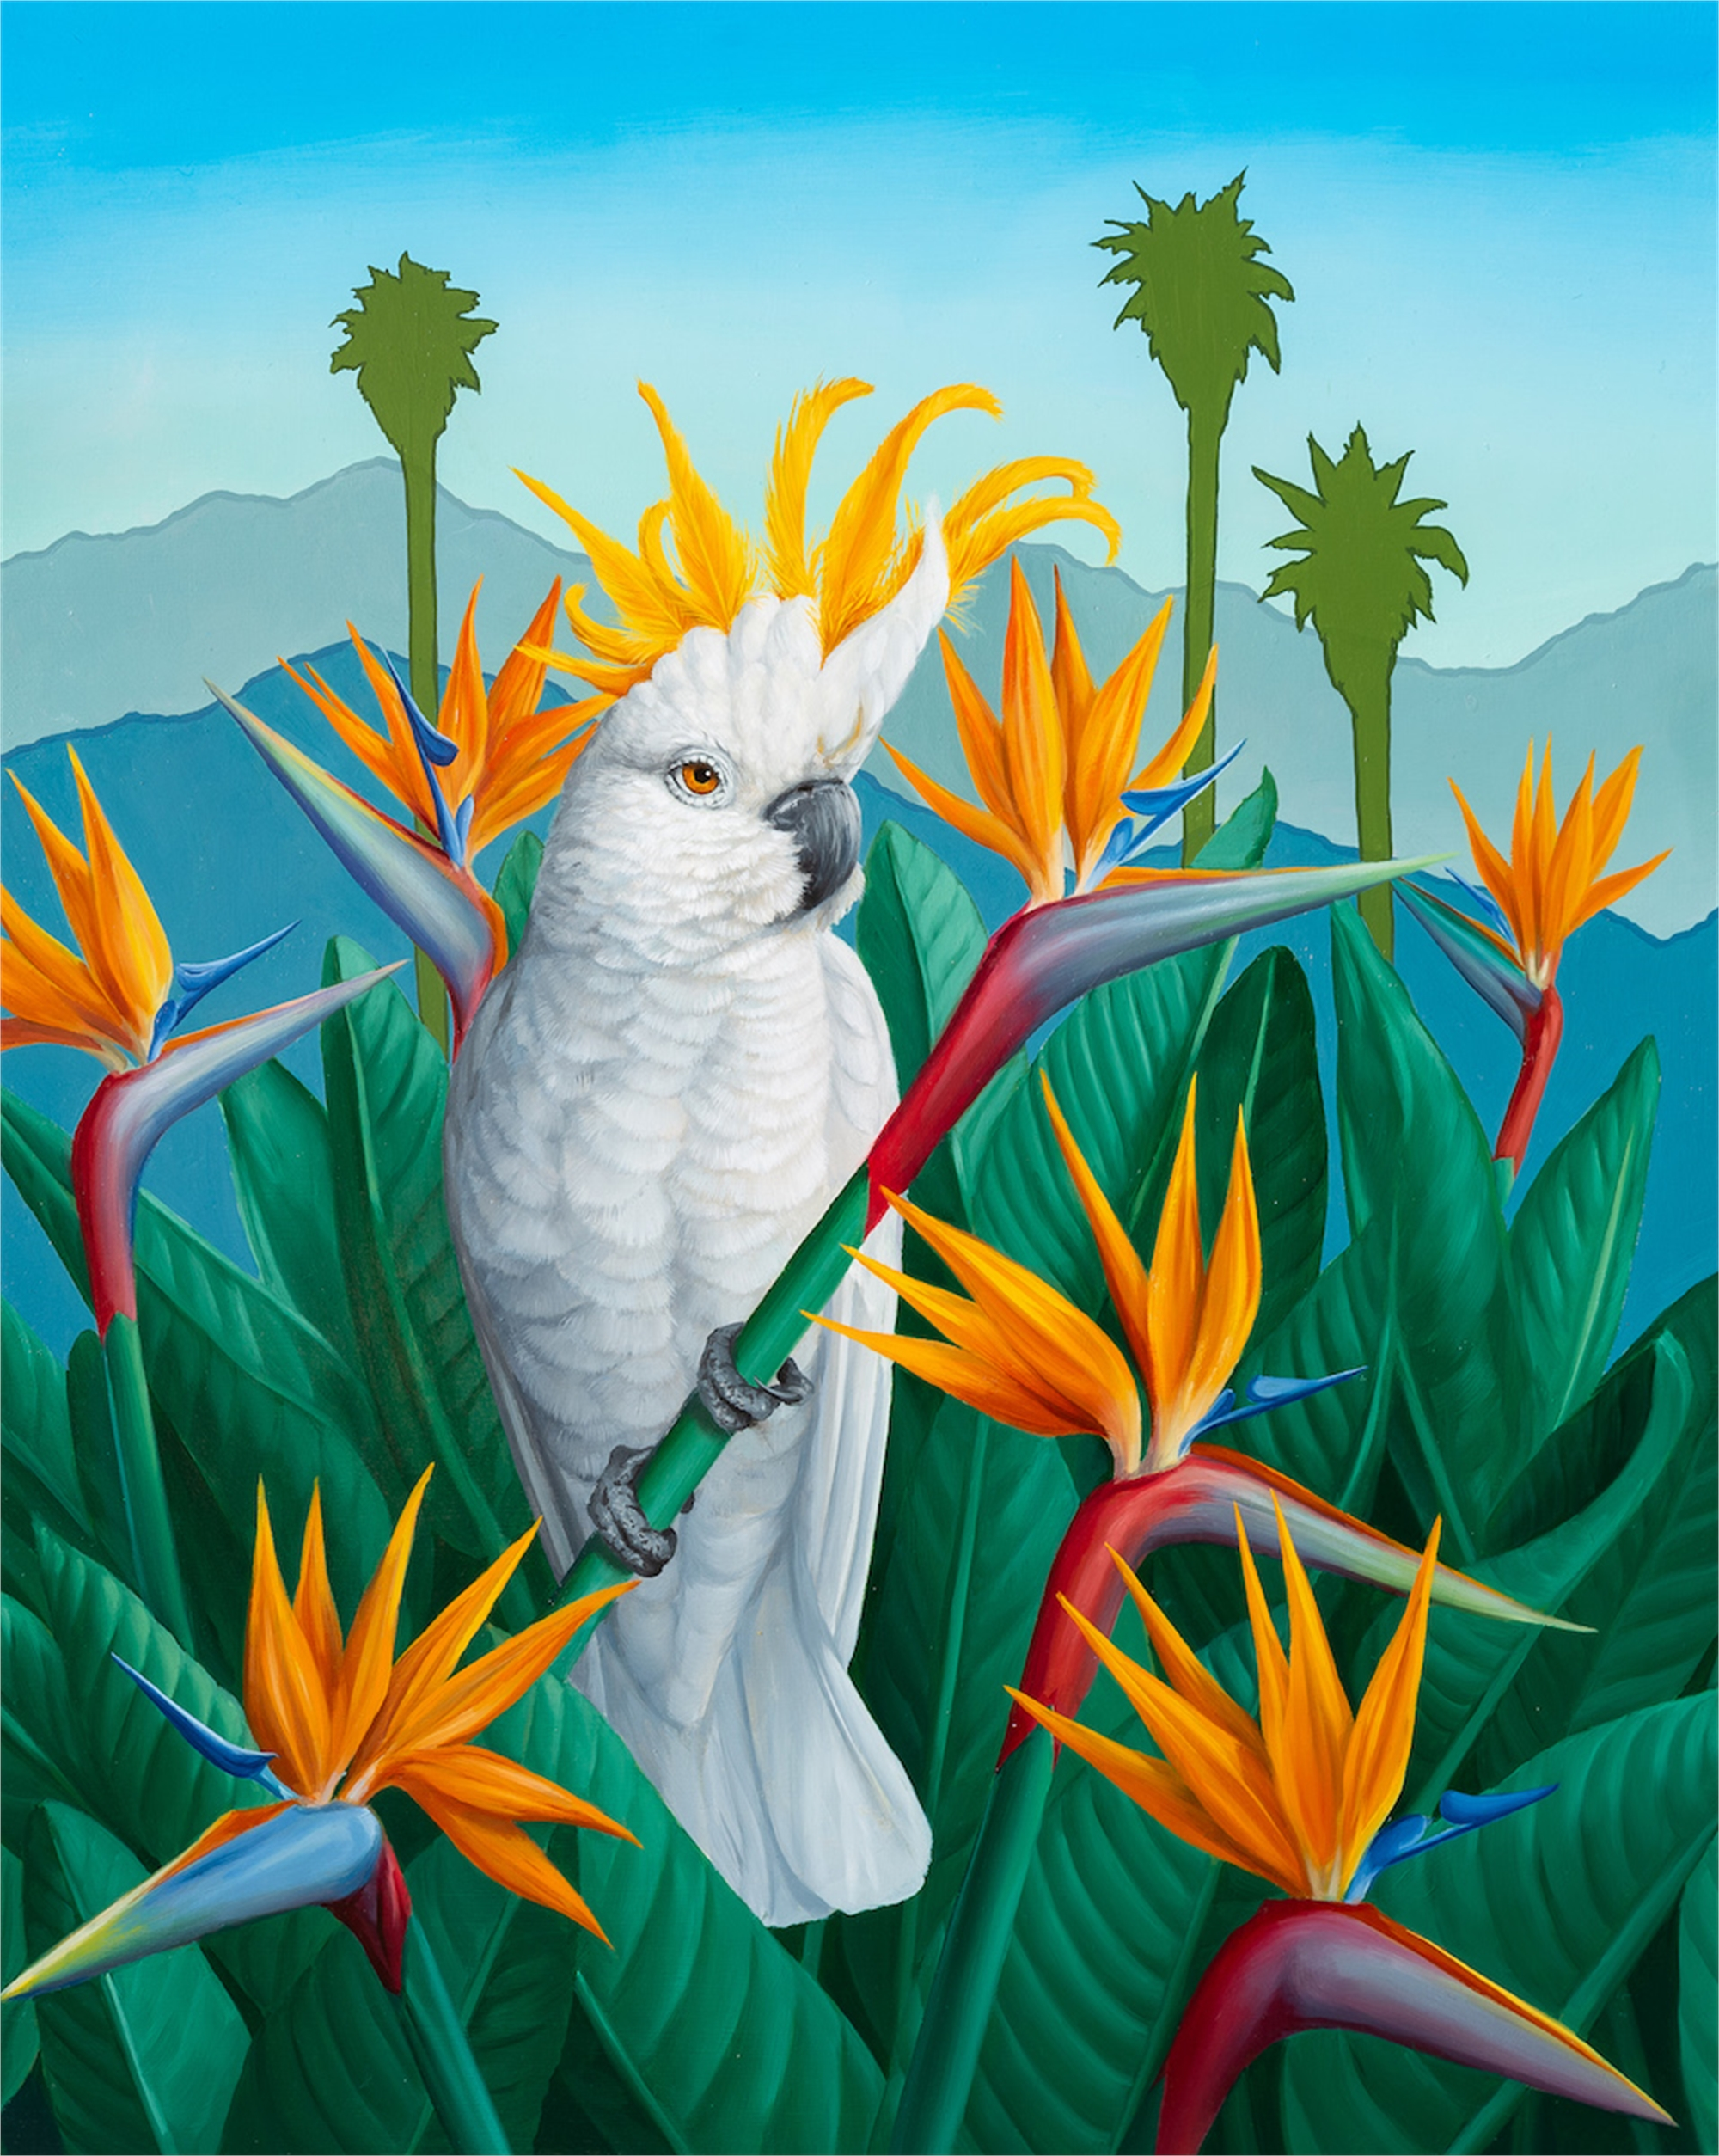 Bird in Paradise by Jon Ching